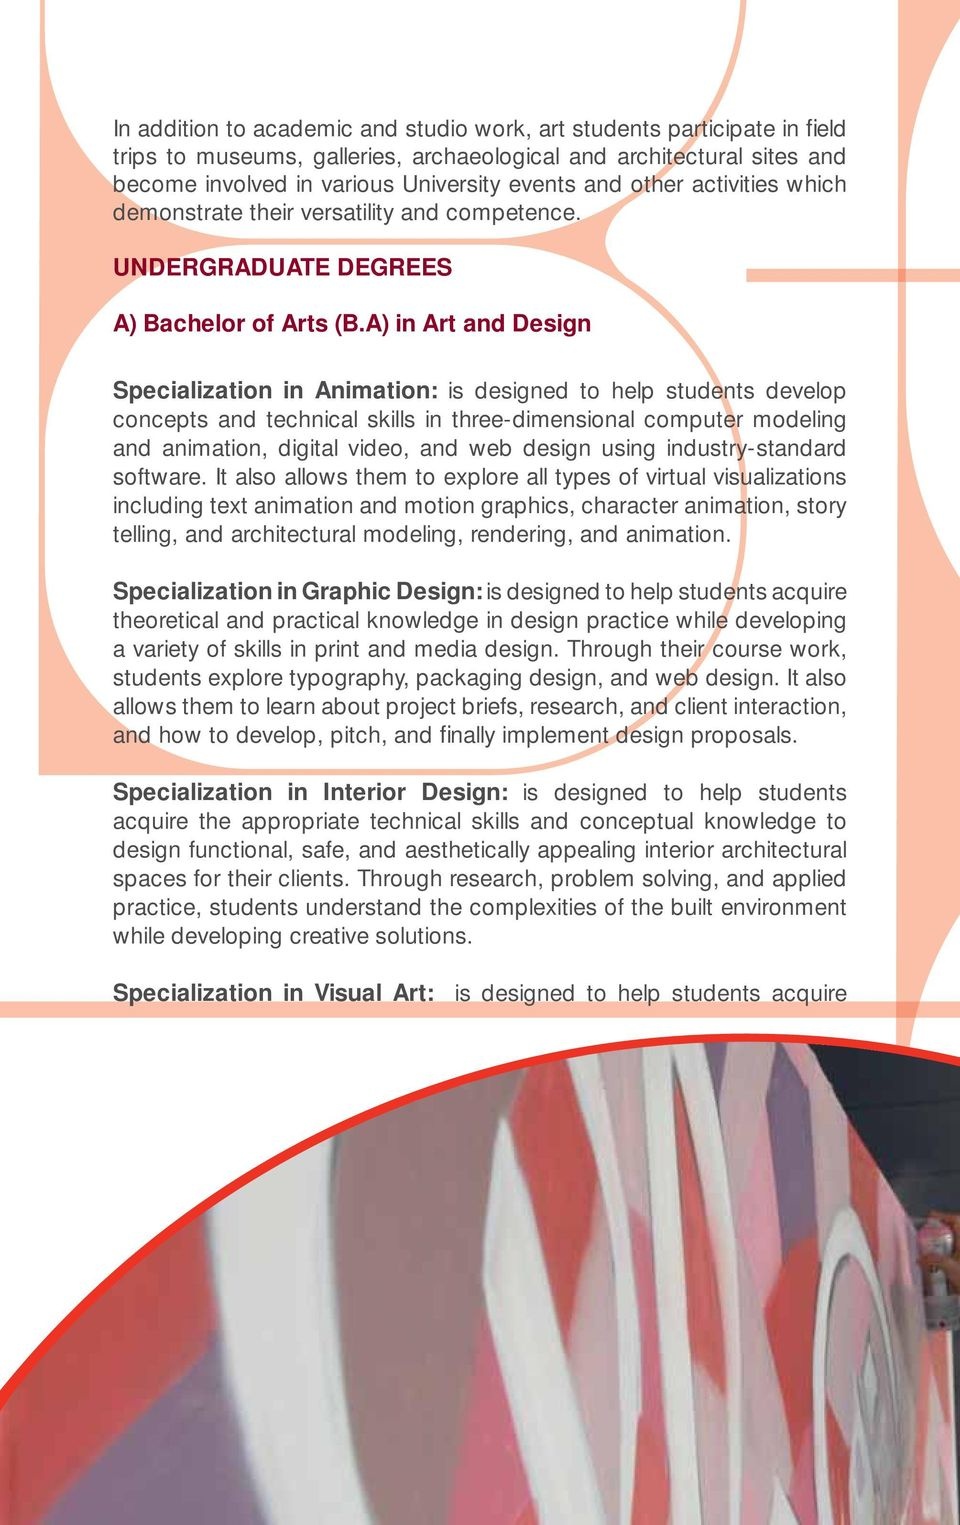 A) in Art and Design Specialization in Animation: is designed to help students develop concepts and technical skills in three-dimensional computer modeling and animation, digital video, and web